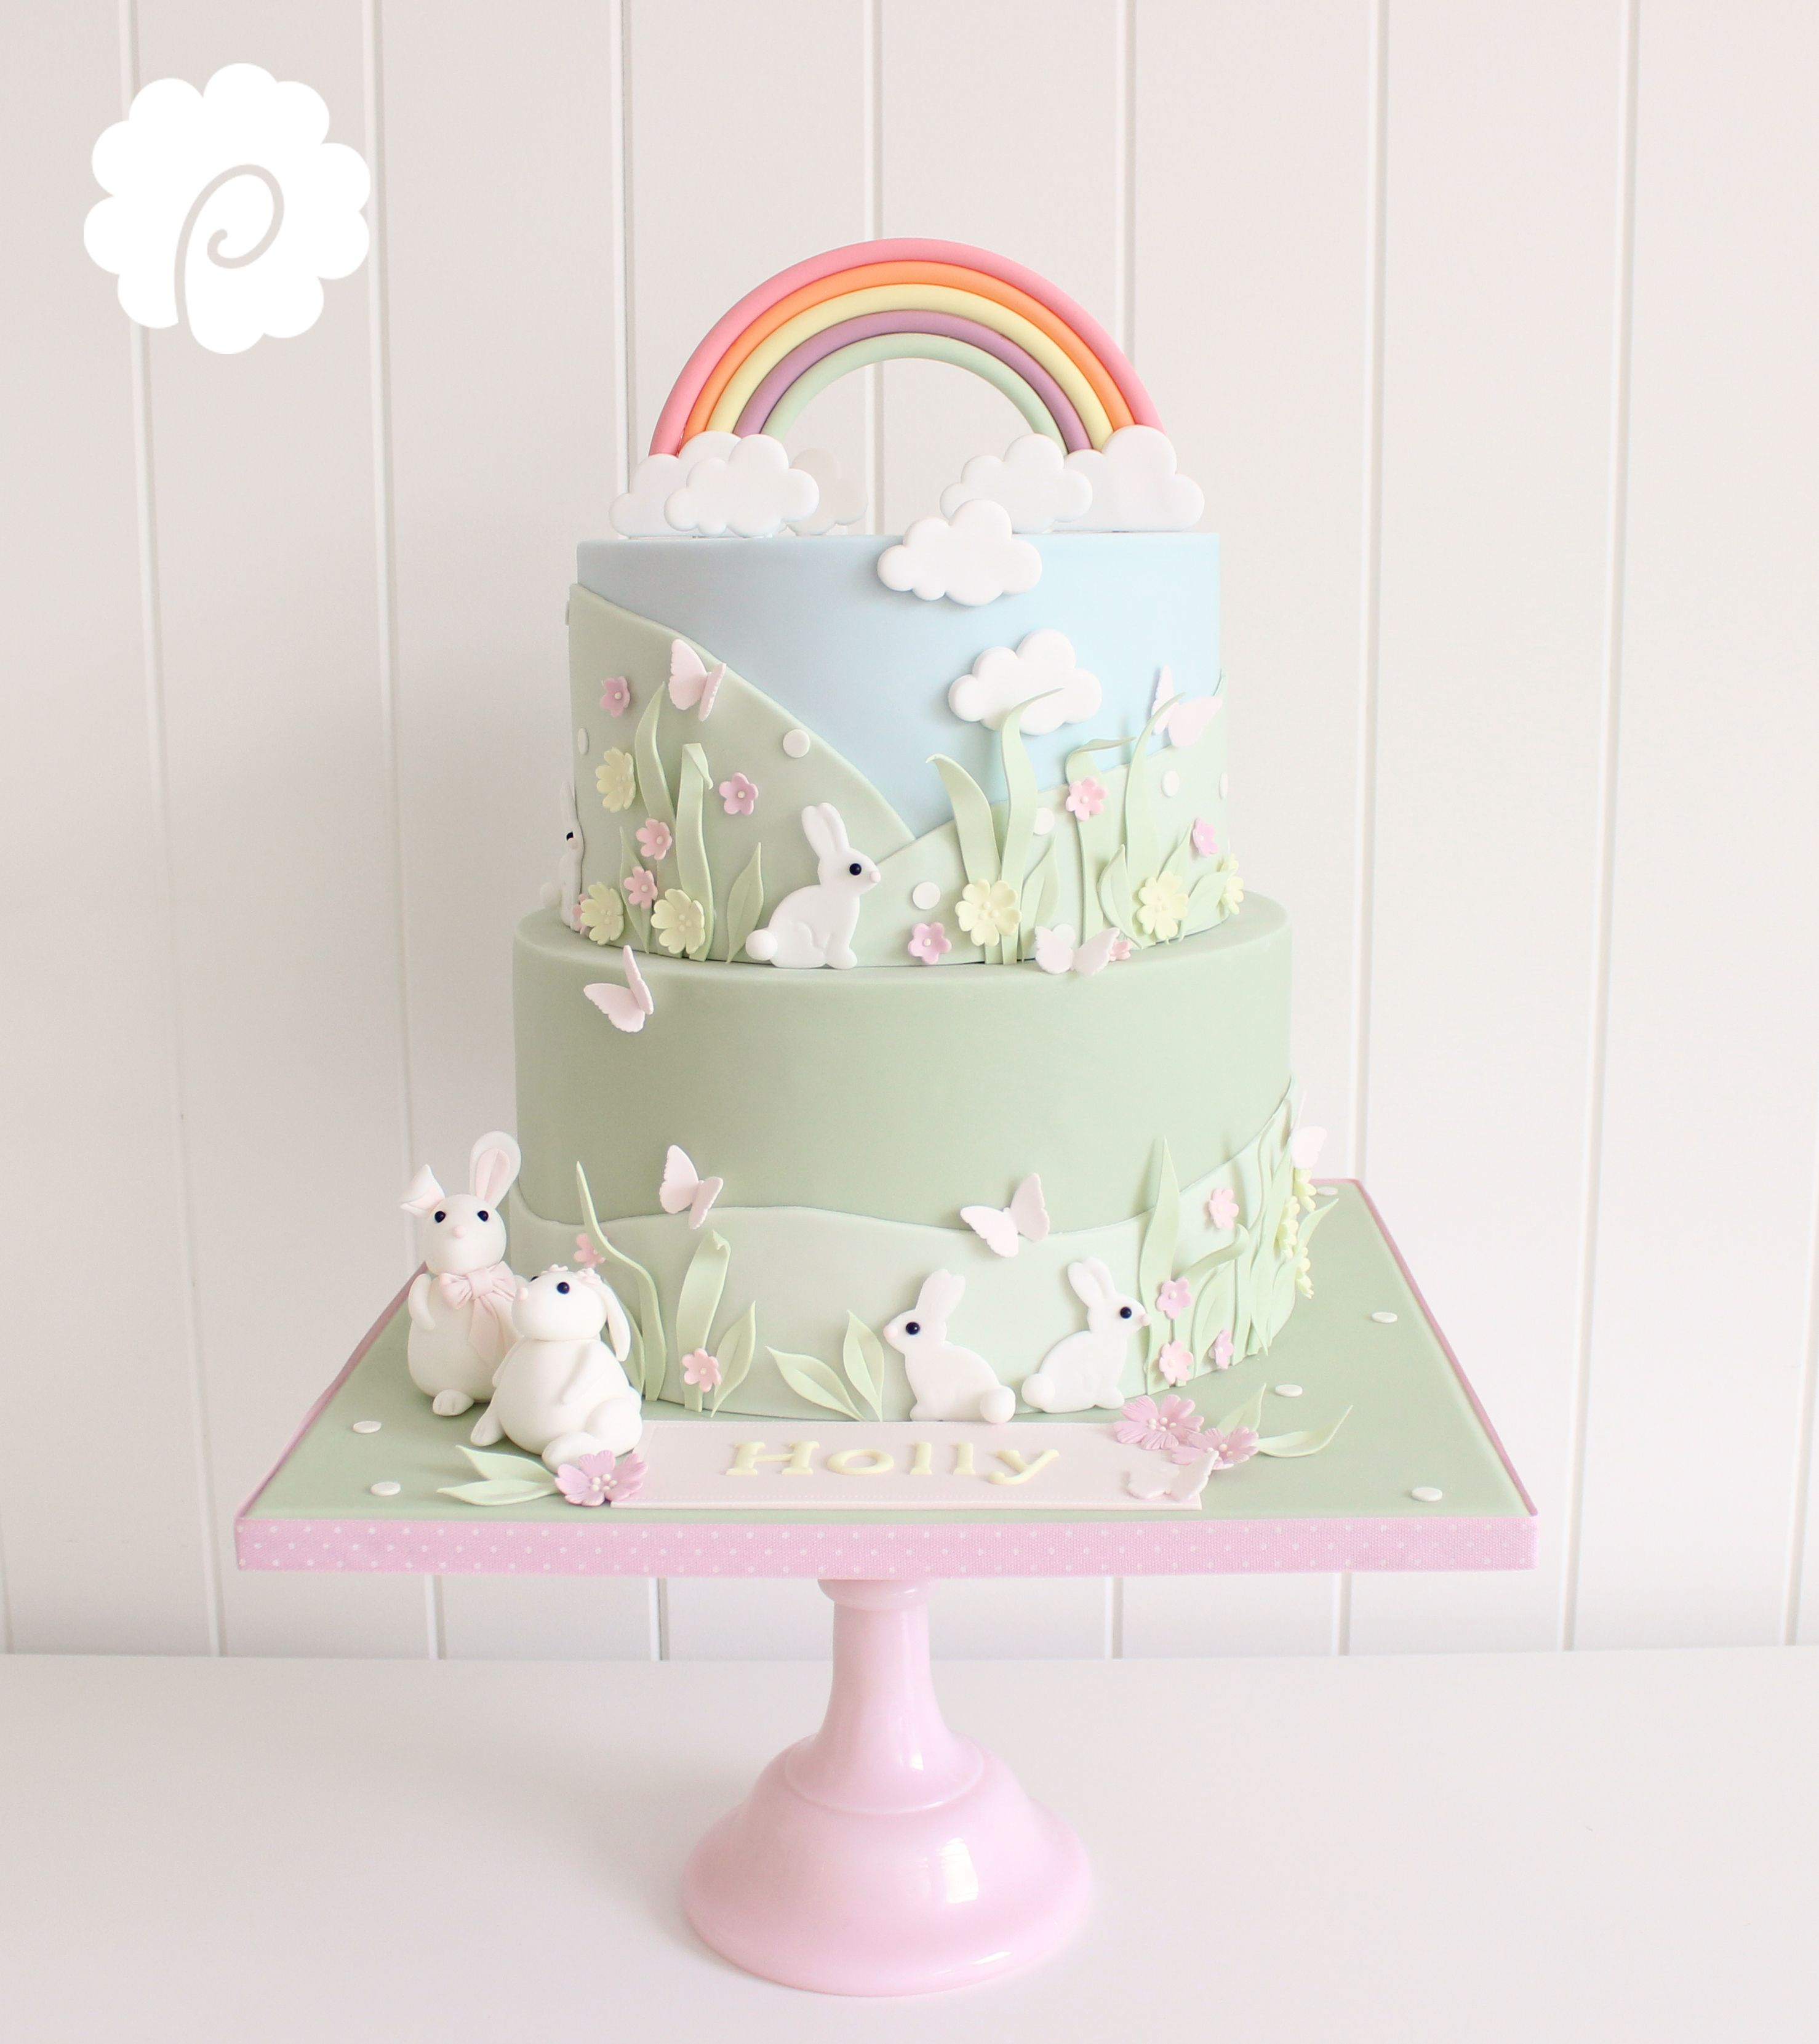 Pastel colour rainbow and bunnies themed christening cake